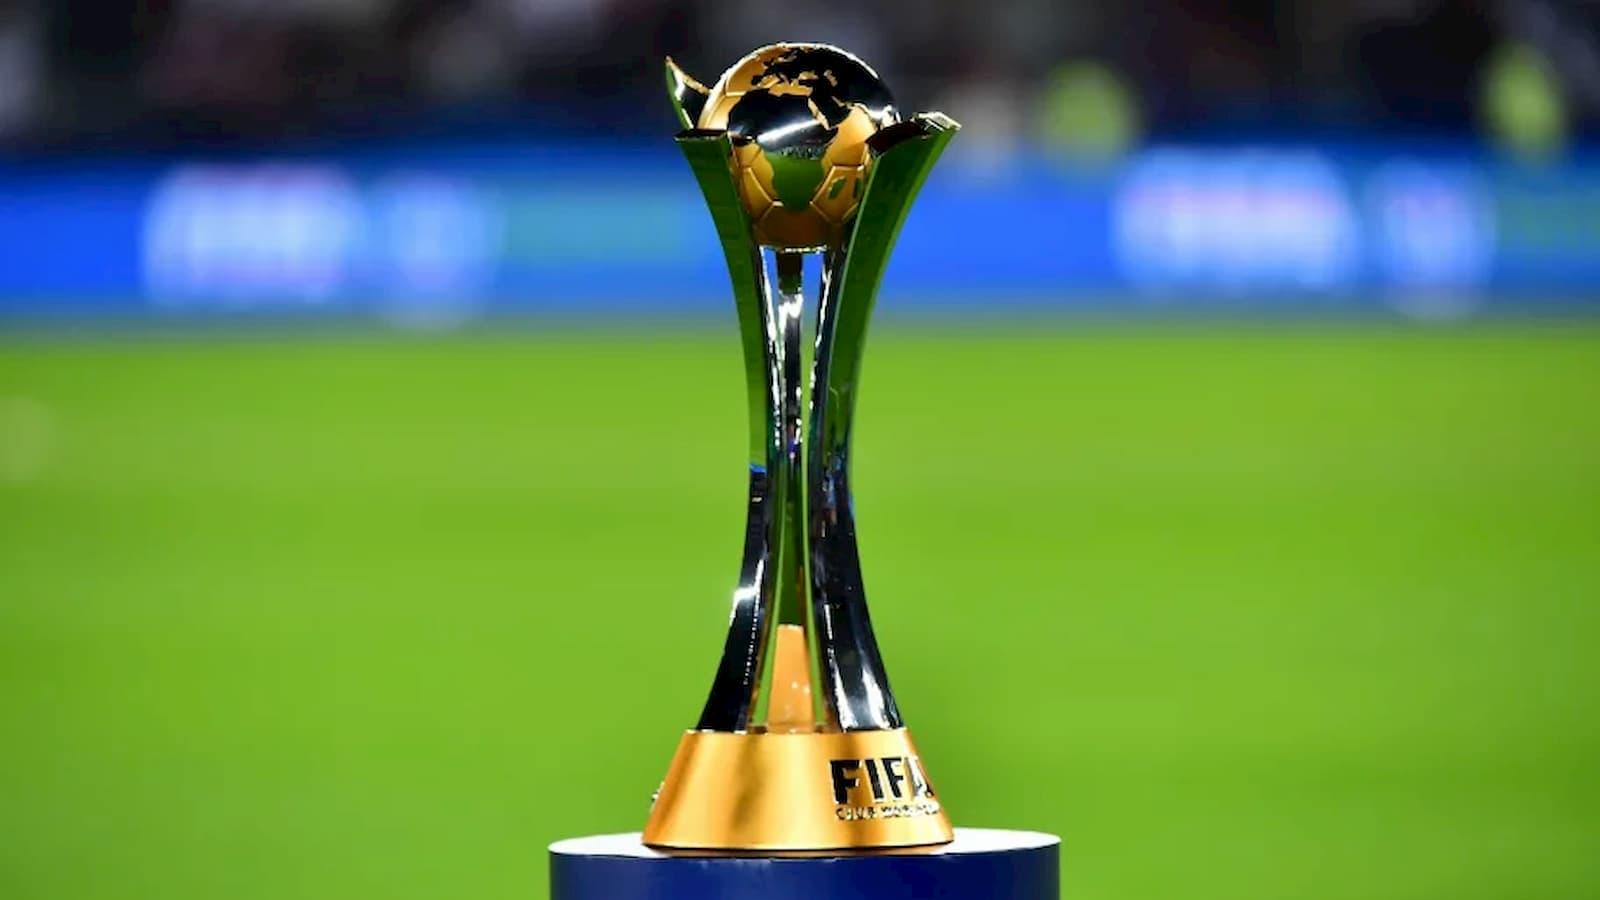 All you need to know about the FIFA Club World Cup 2019